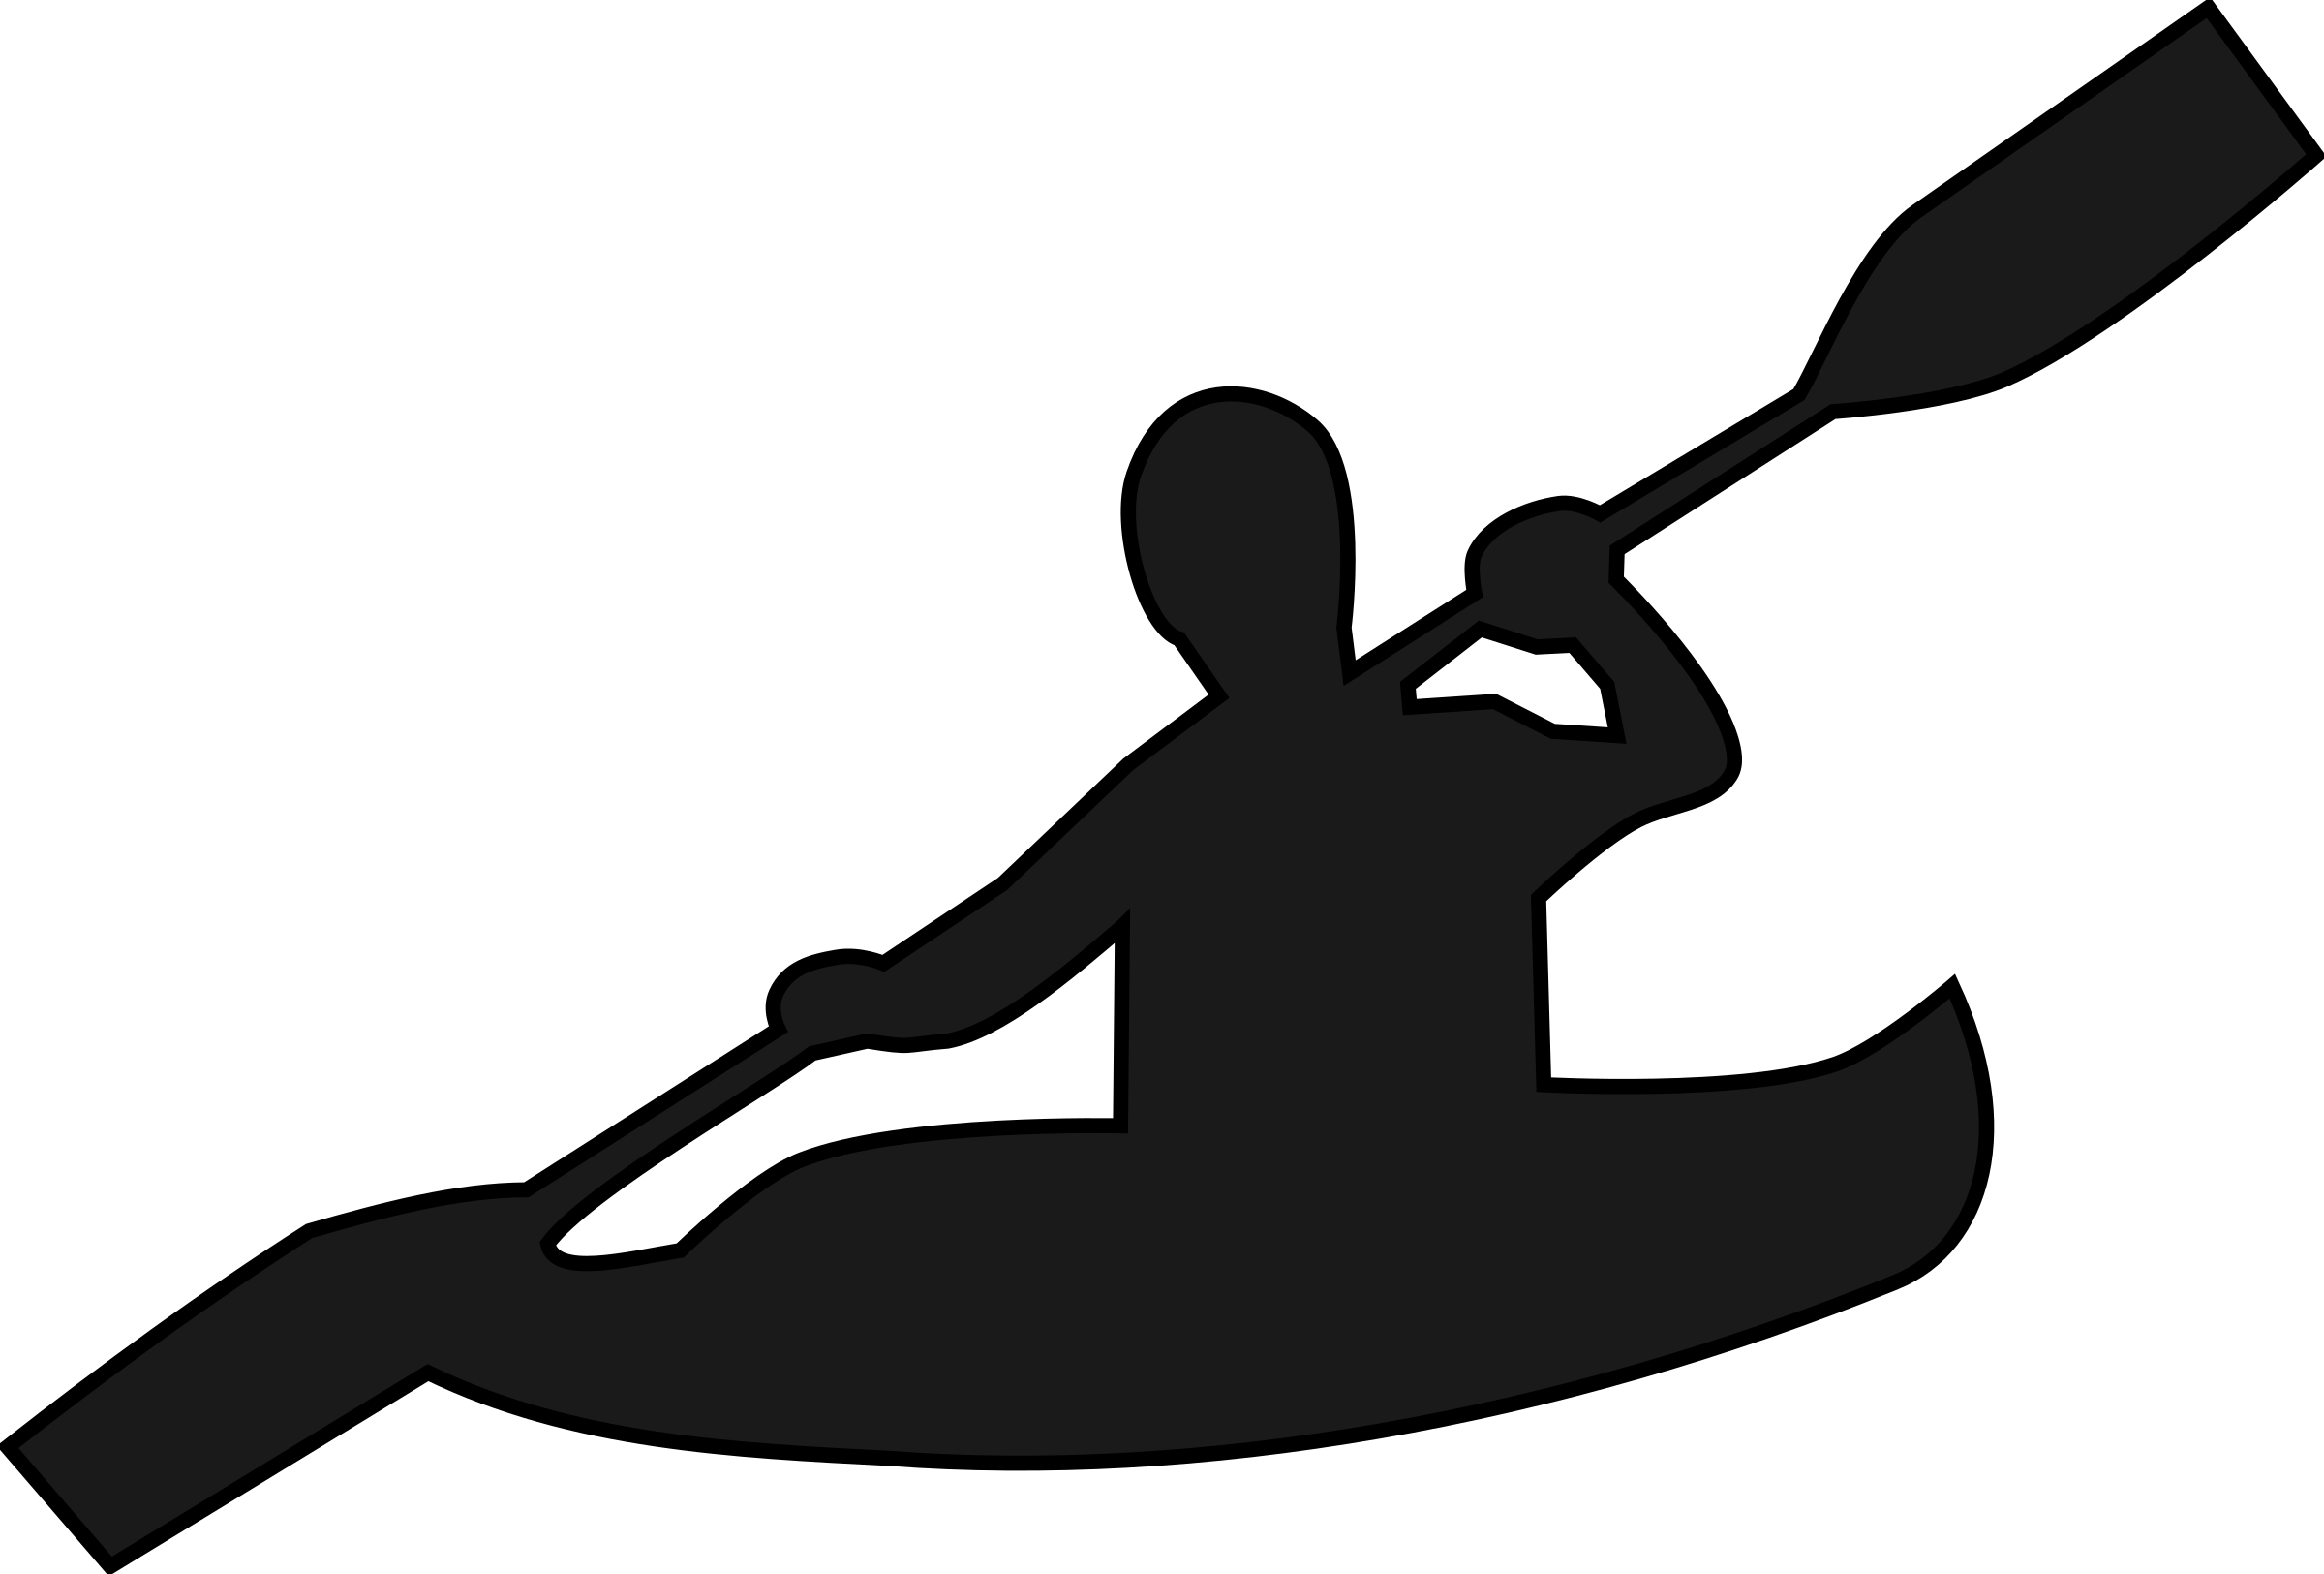 Canoing clipart picture transparent library Free Canoeing Cliparts, Download Free Clip Art, Free Clip Art on ... picture transparent library